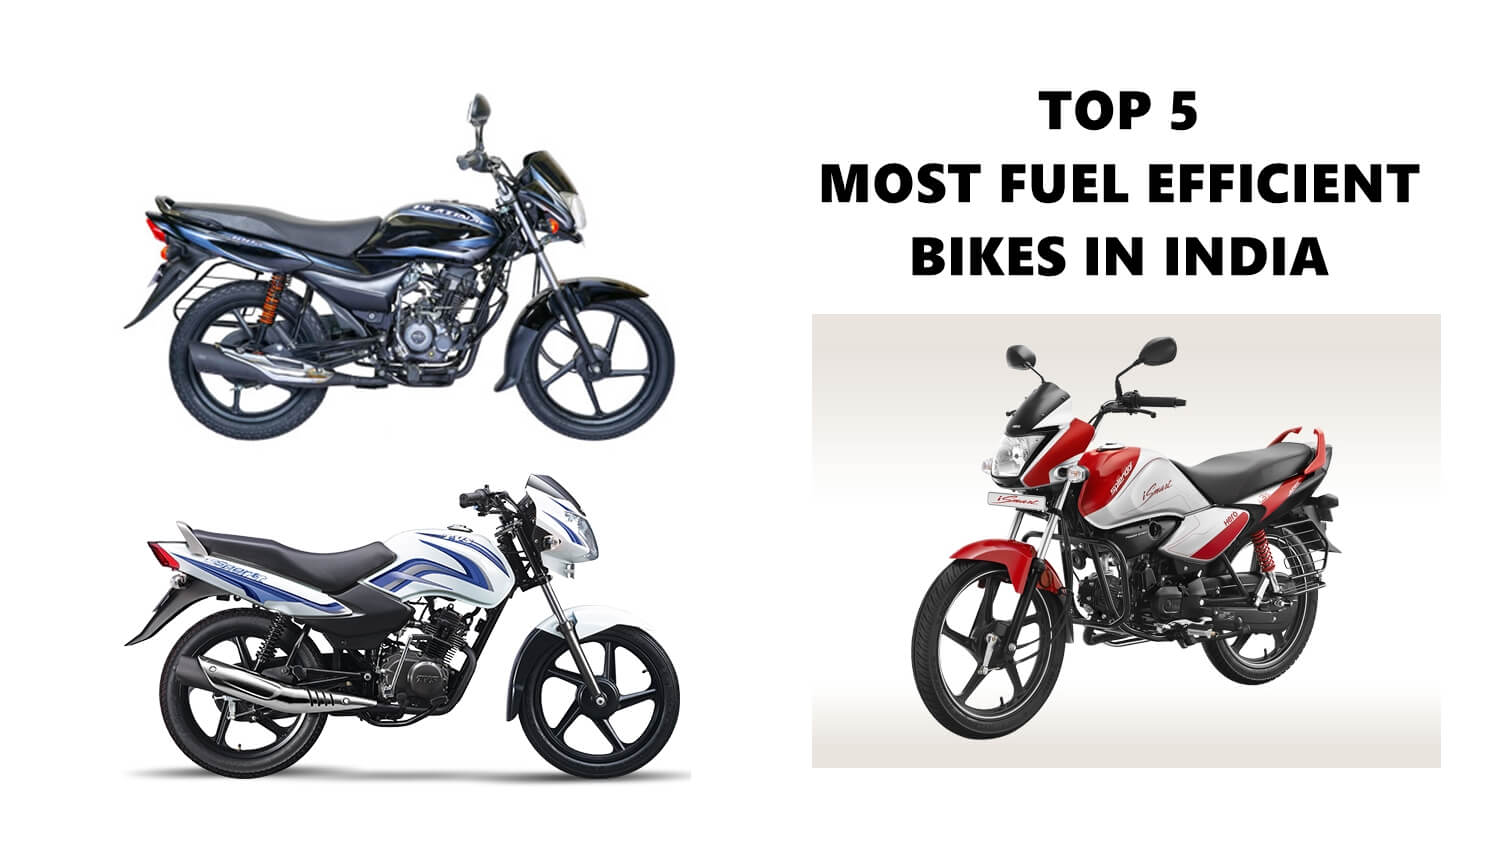 Most fuel efficient bikes in India